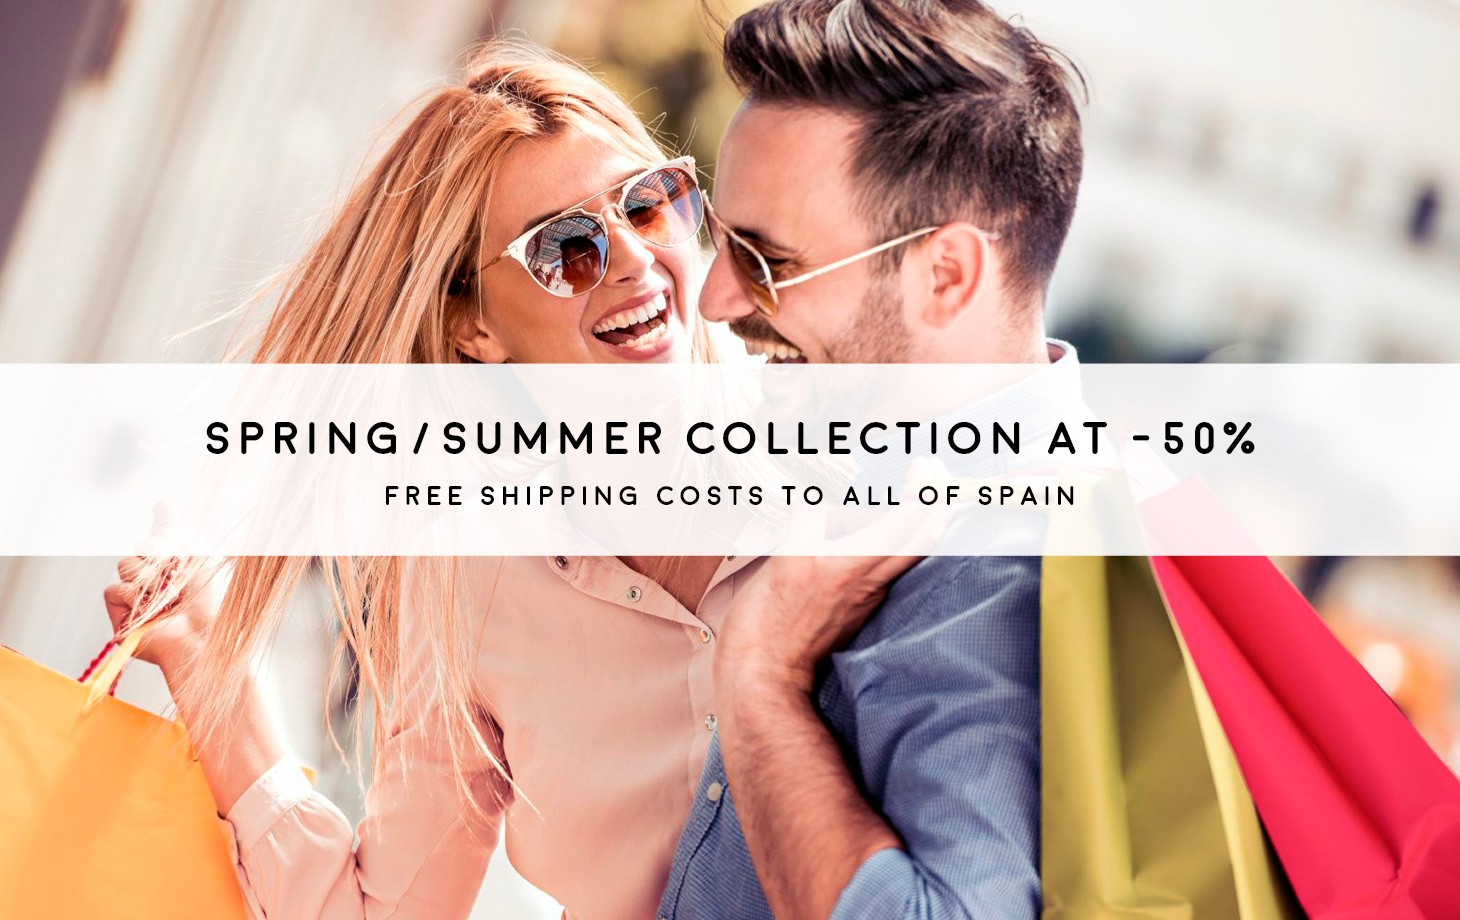 Spring-summer collection at -50%. FREE shipping to all of Spain.